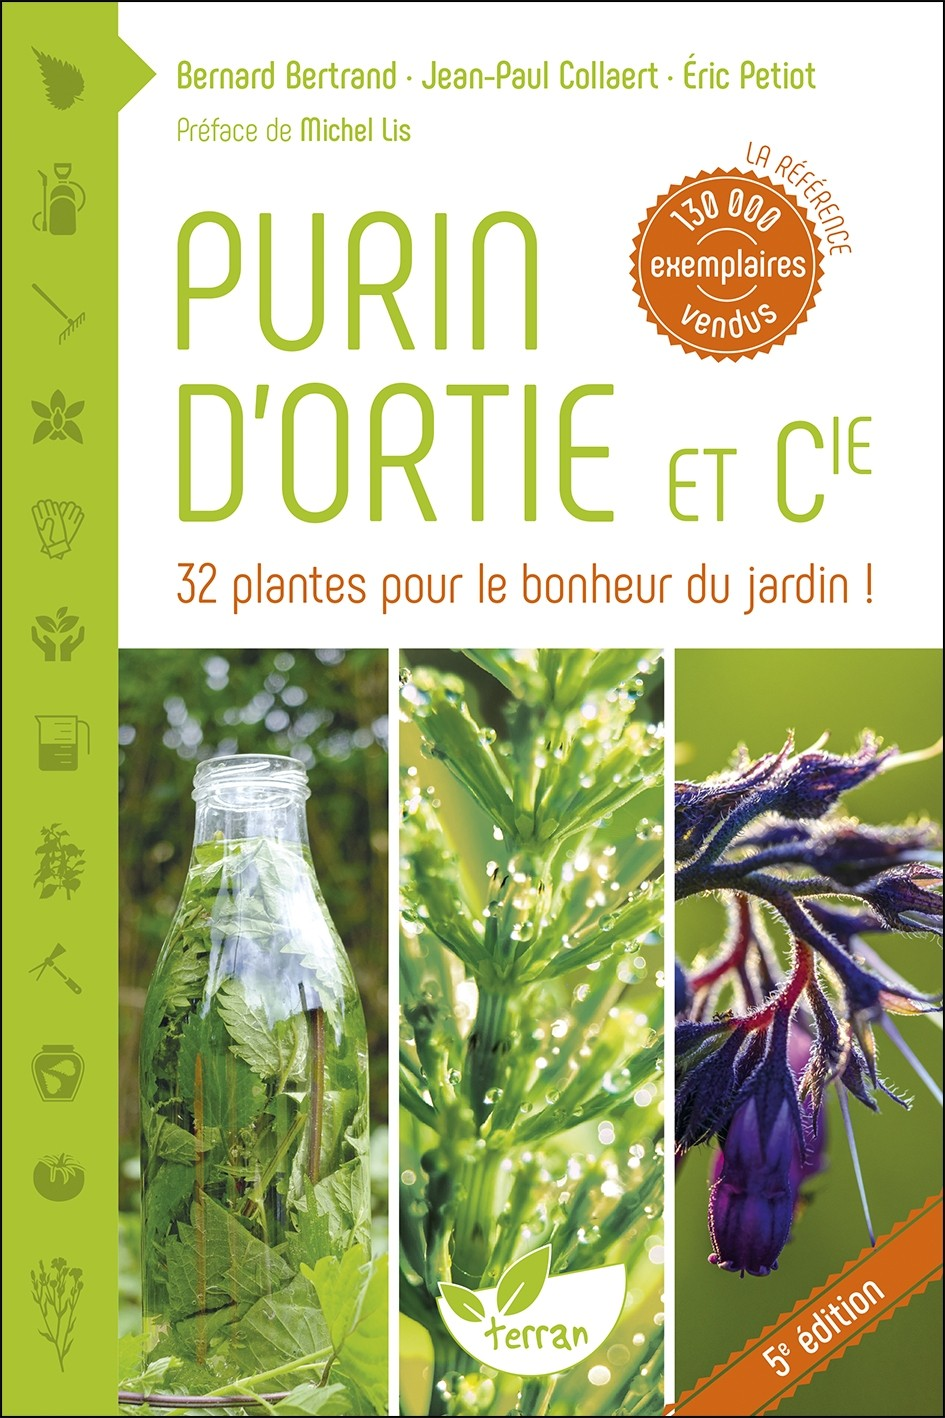 Purin d'ortie & cie